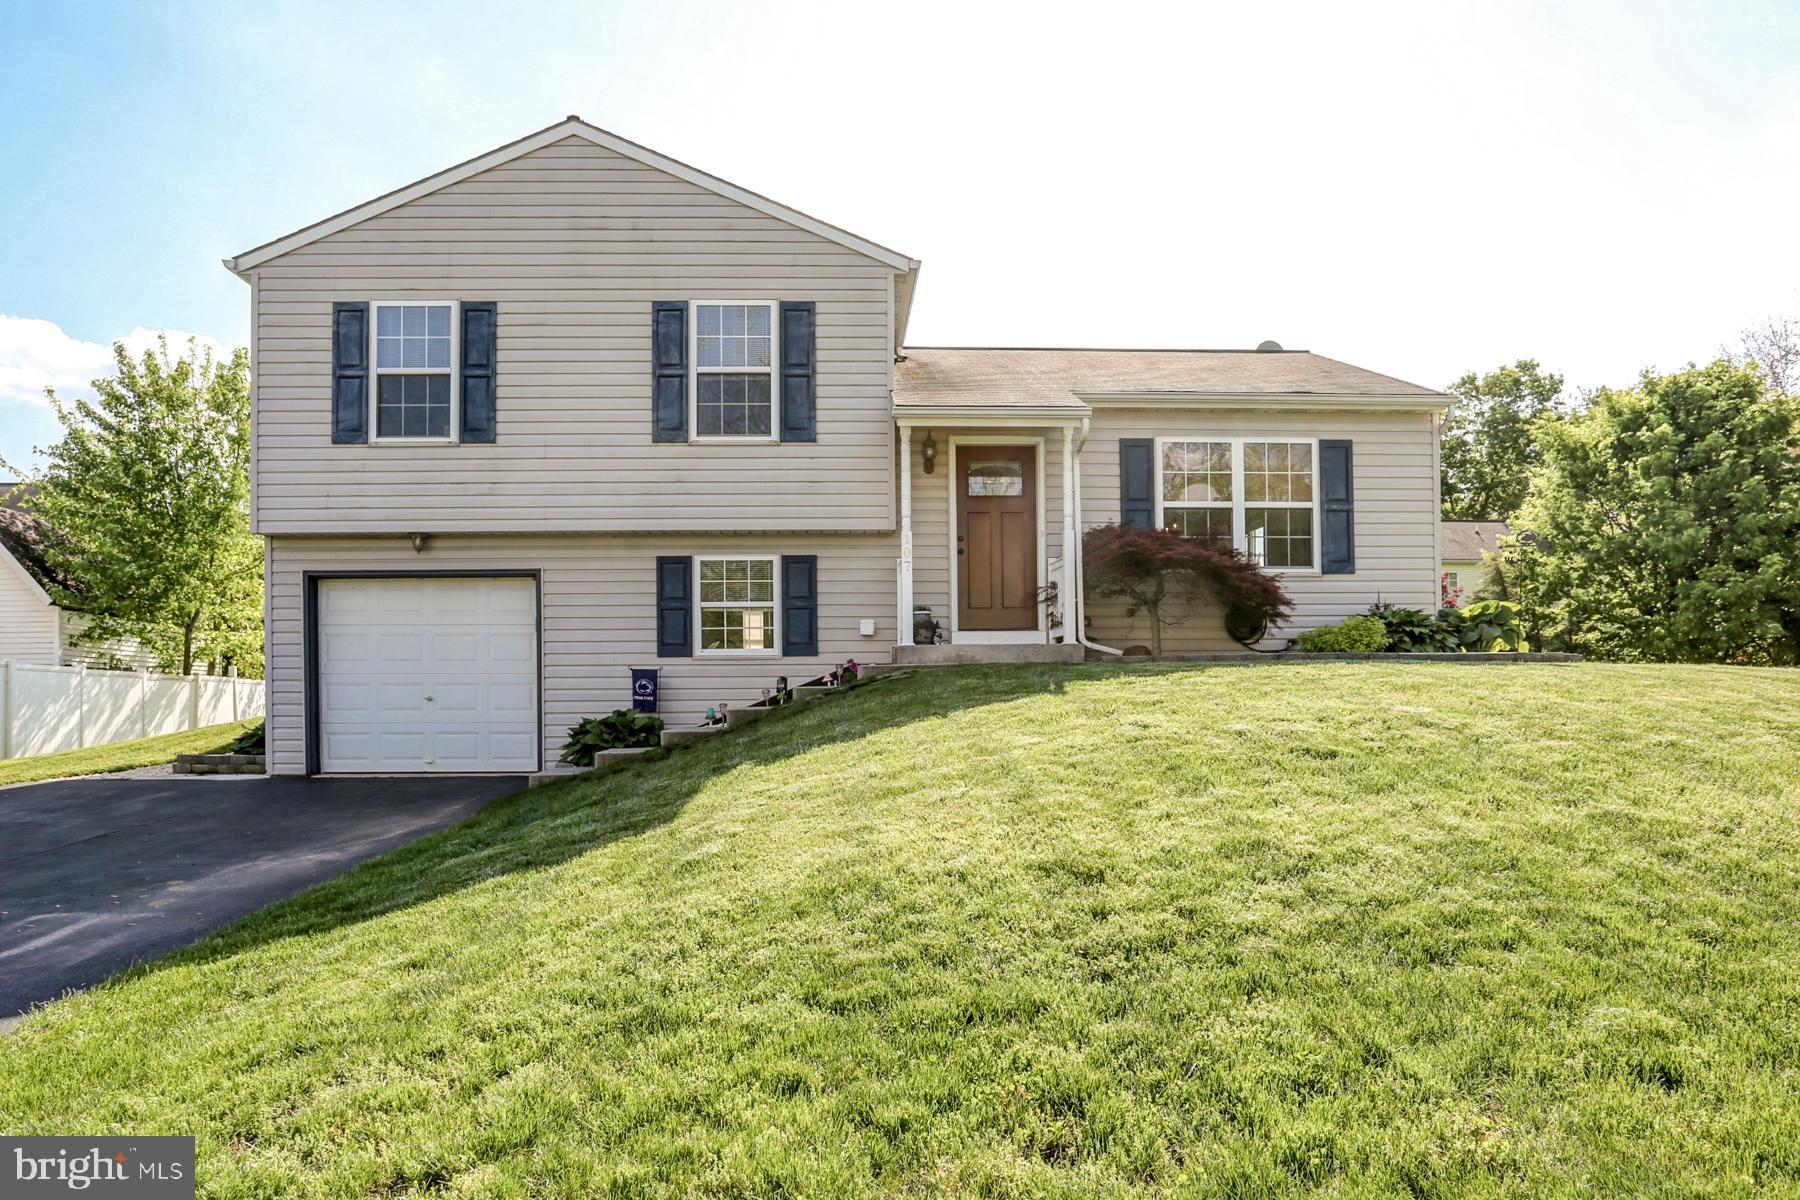 107 COMMODORE DRIVE, BAINBRIDGE, PA 17502